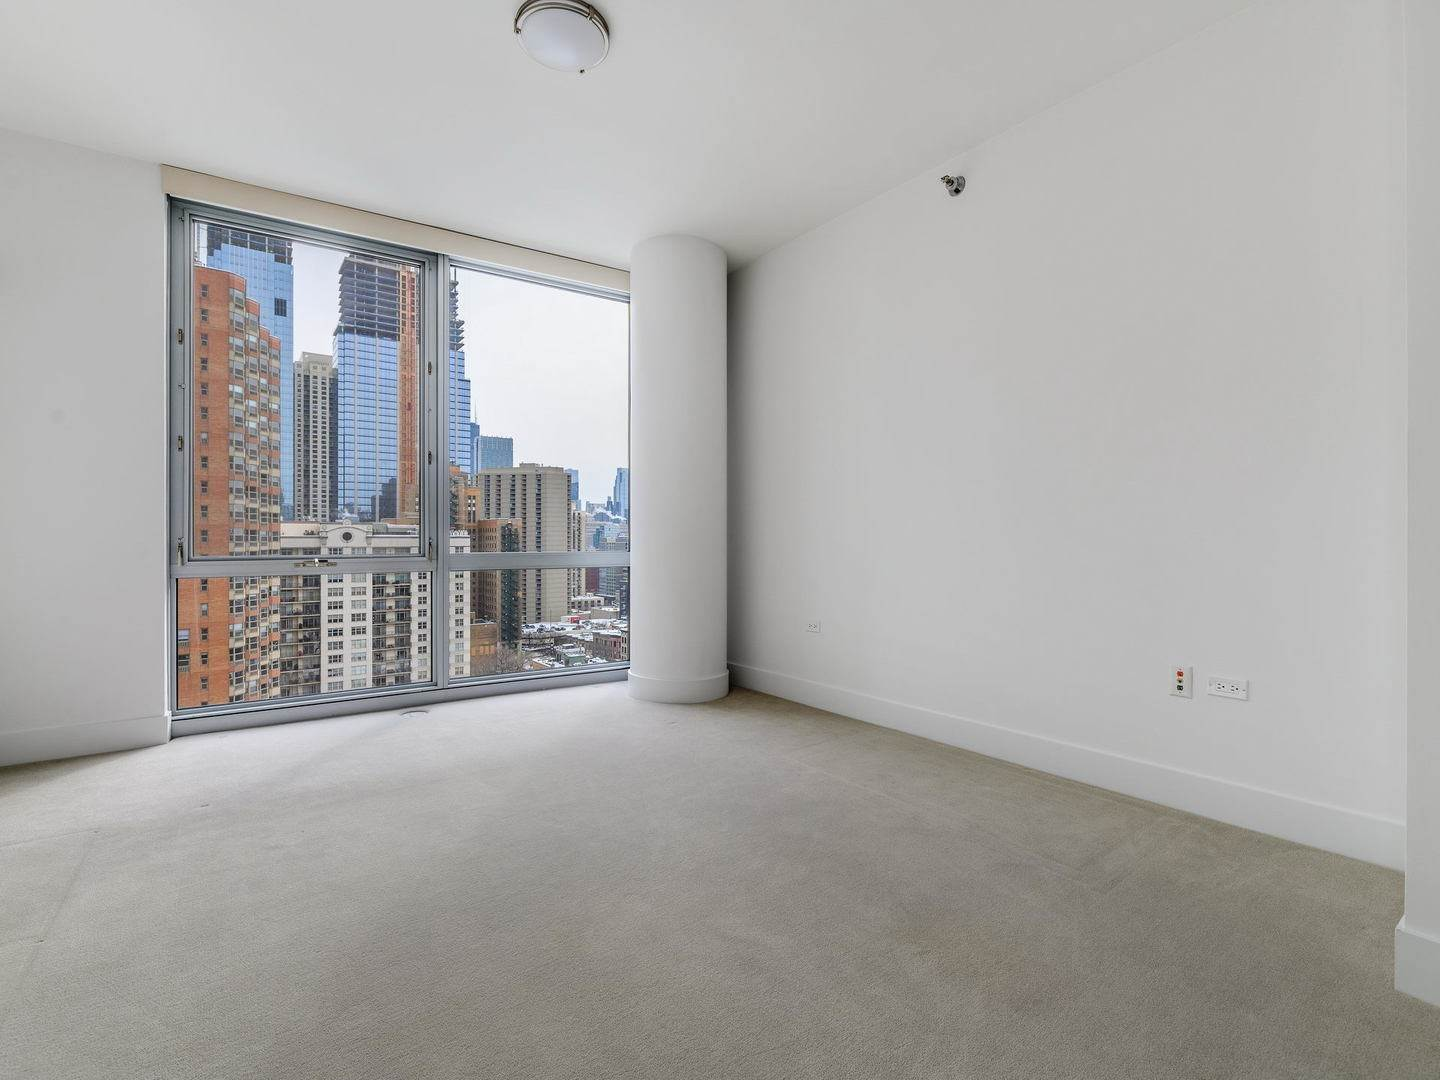 10. Residential Lease at Rush and Division, Chicago, Illinois, 60610 United States